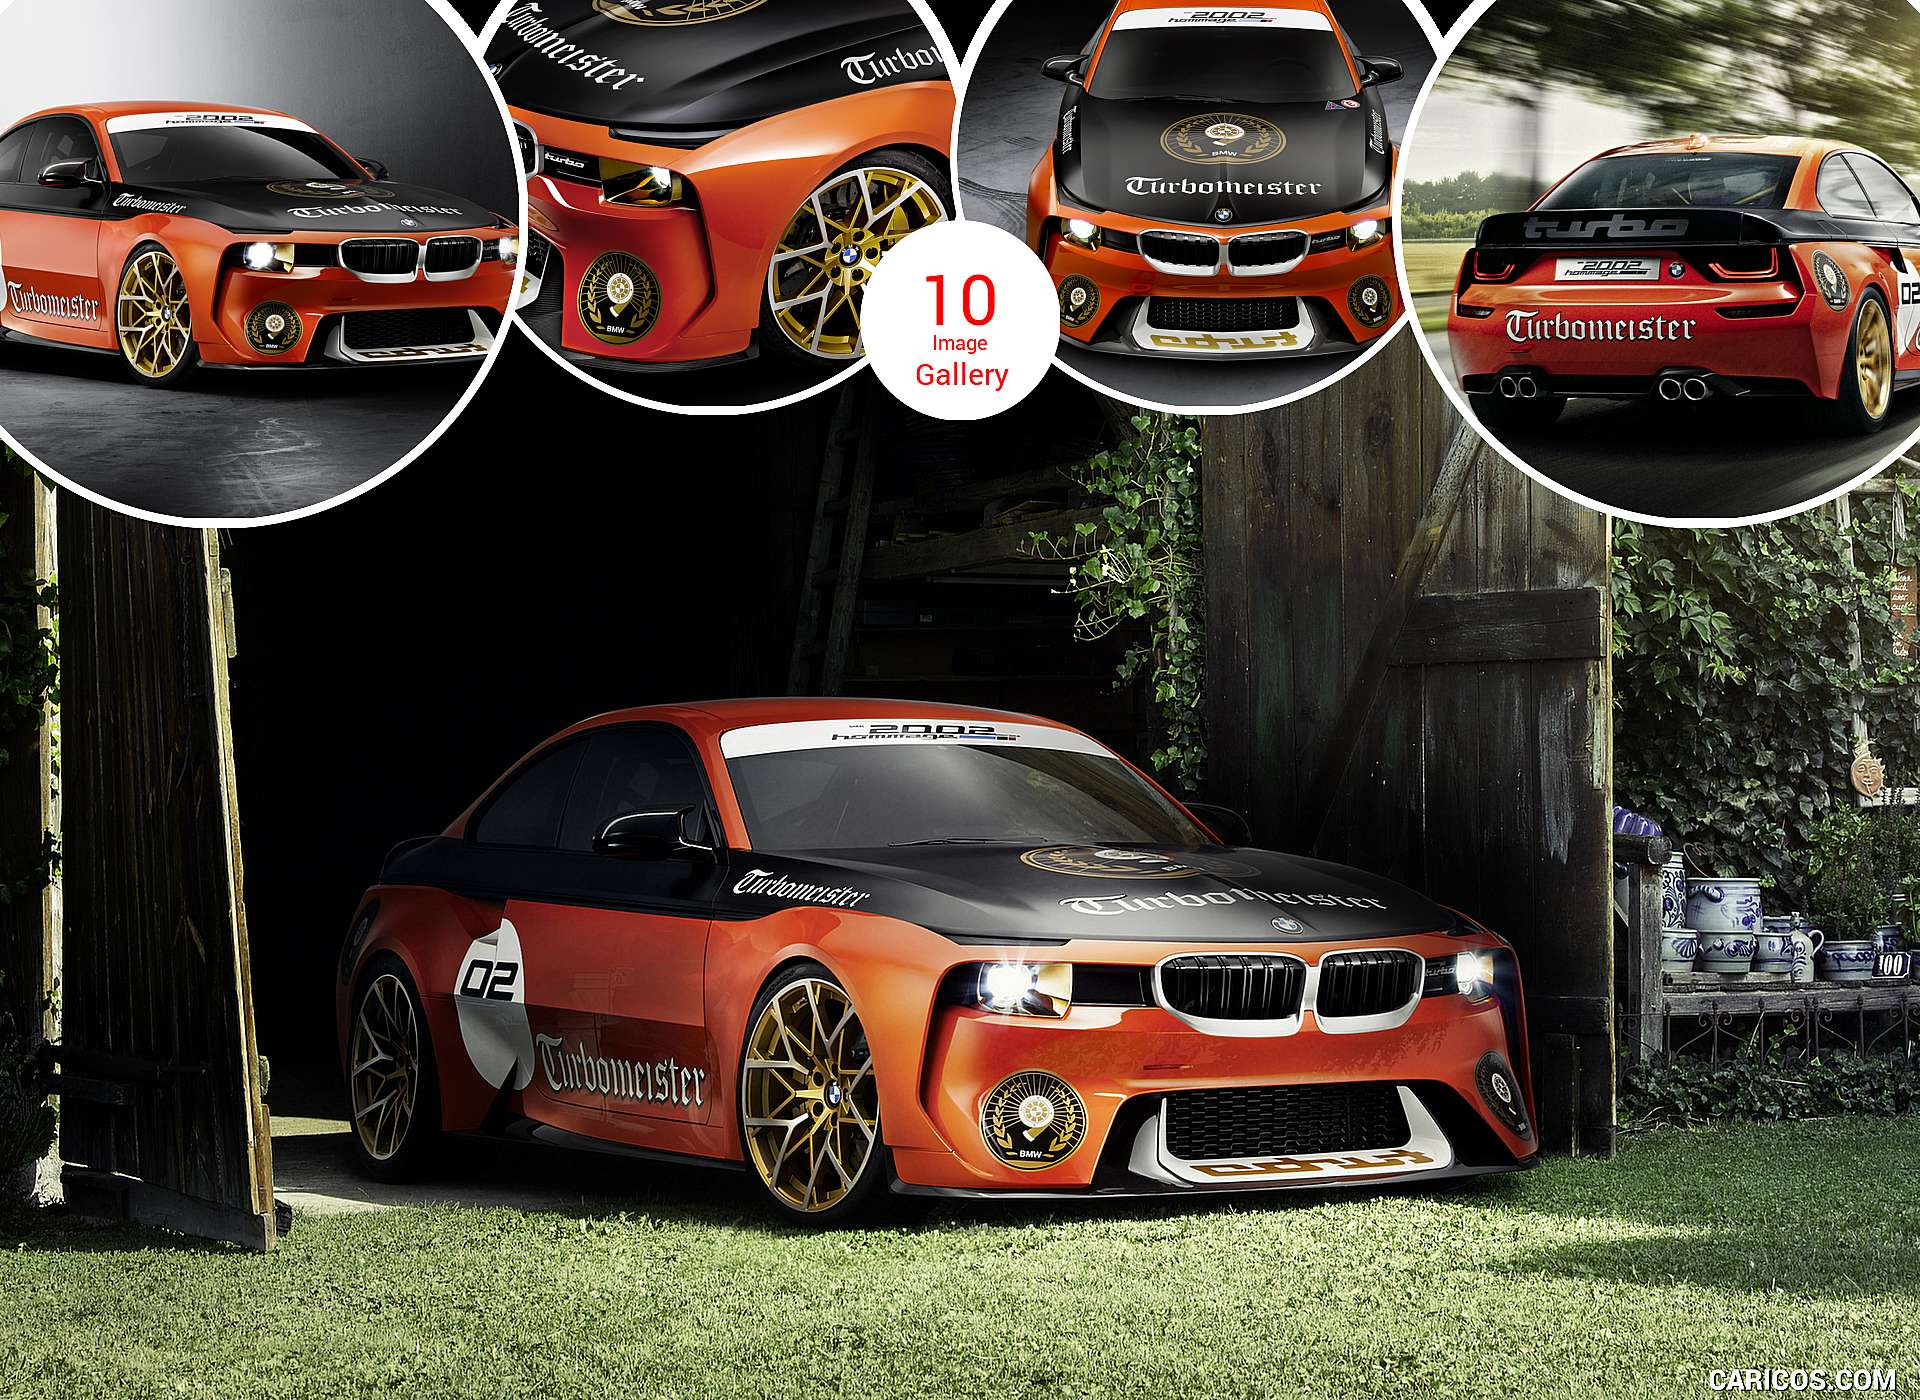 2016 BMW 2002 Hommage at Concours d'Elegance